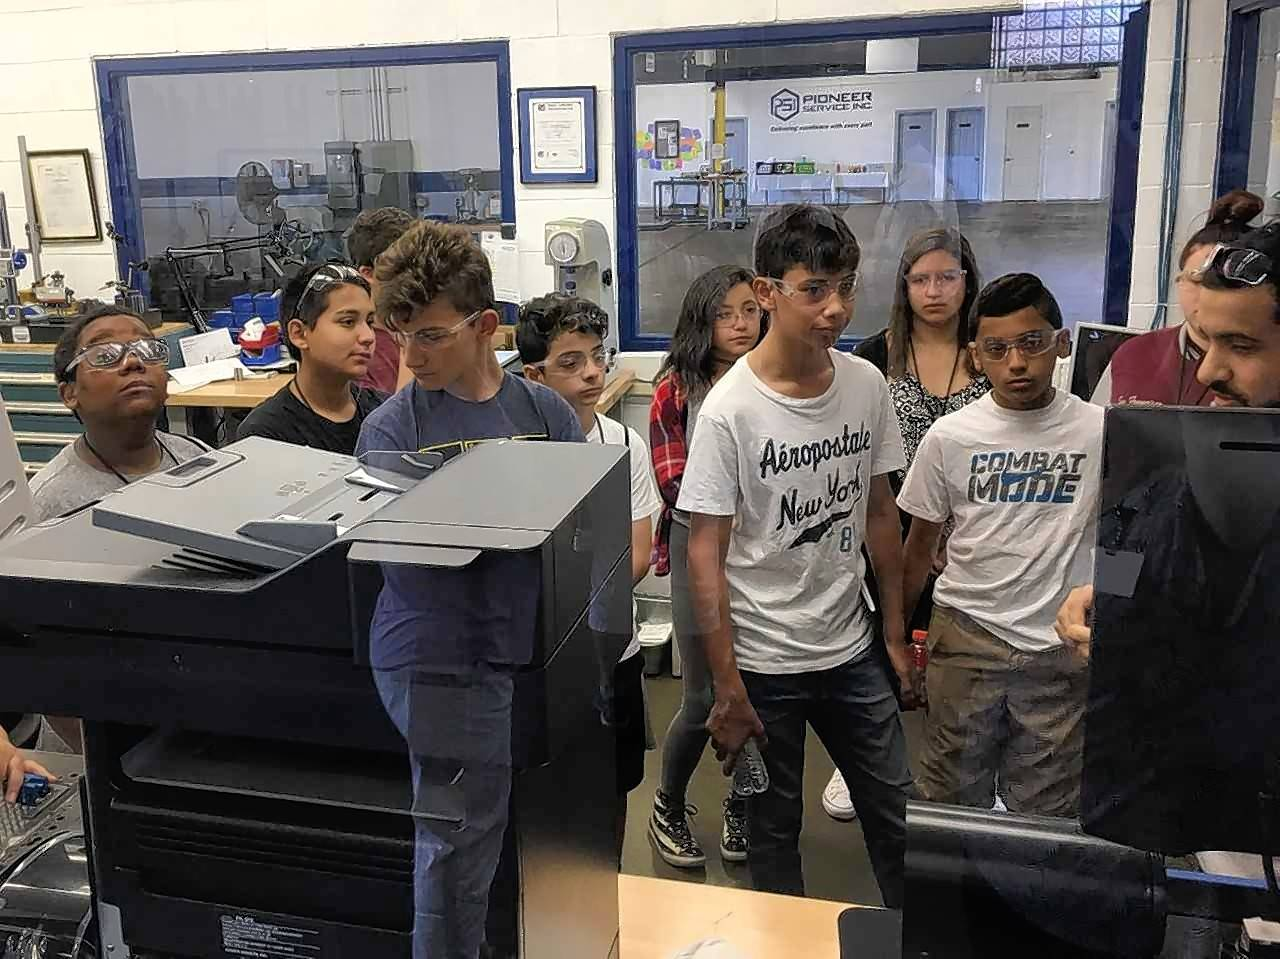 Students from Indian Trail Junior High School in Addison are introduced to a variety of machines and tools that are used to guarantee quality control at Pioneer Service Inc., a local manufacturing company.